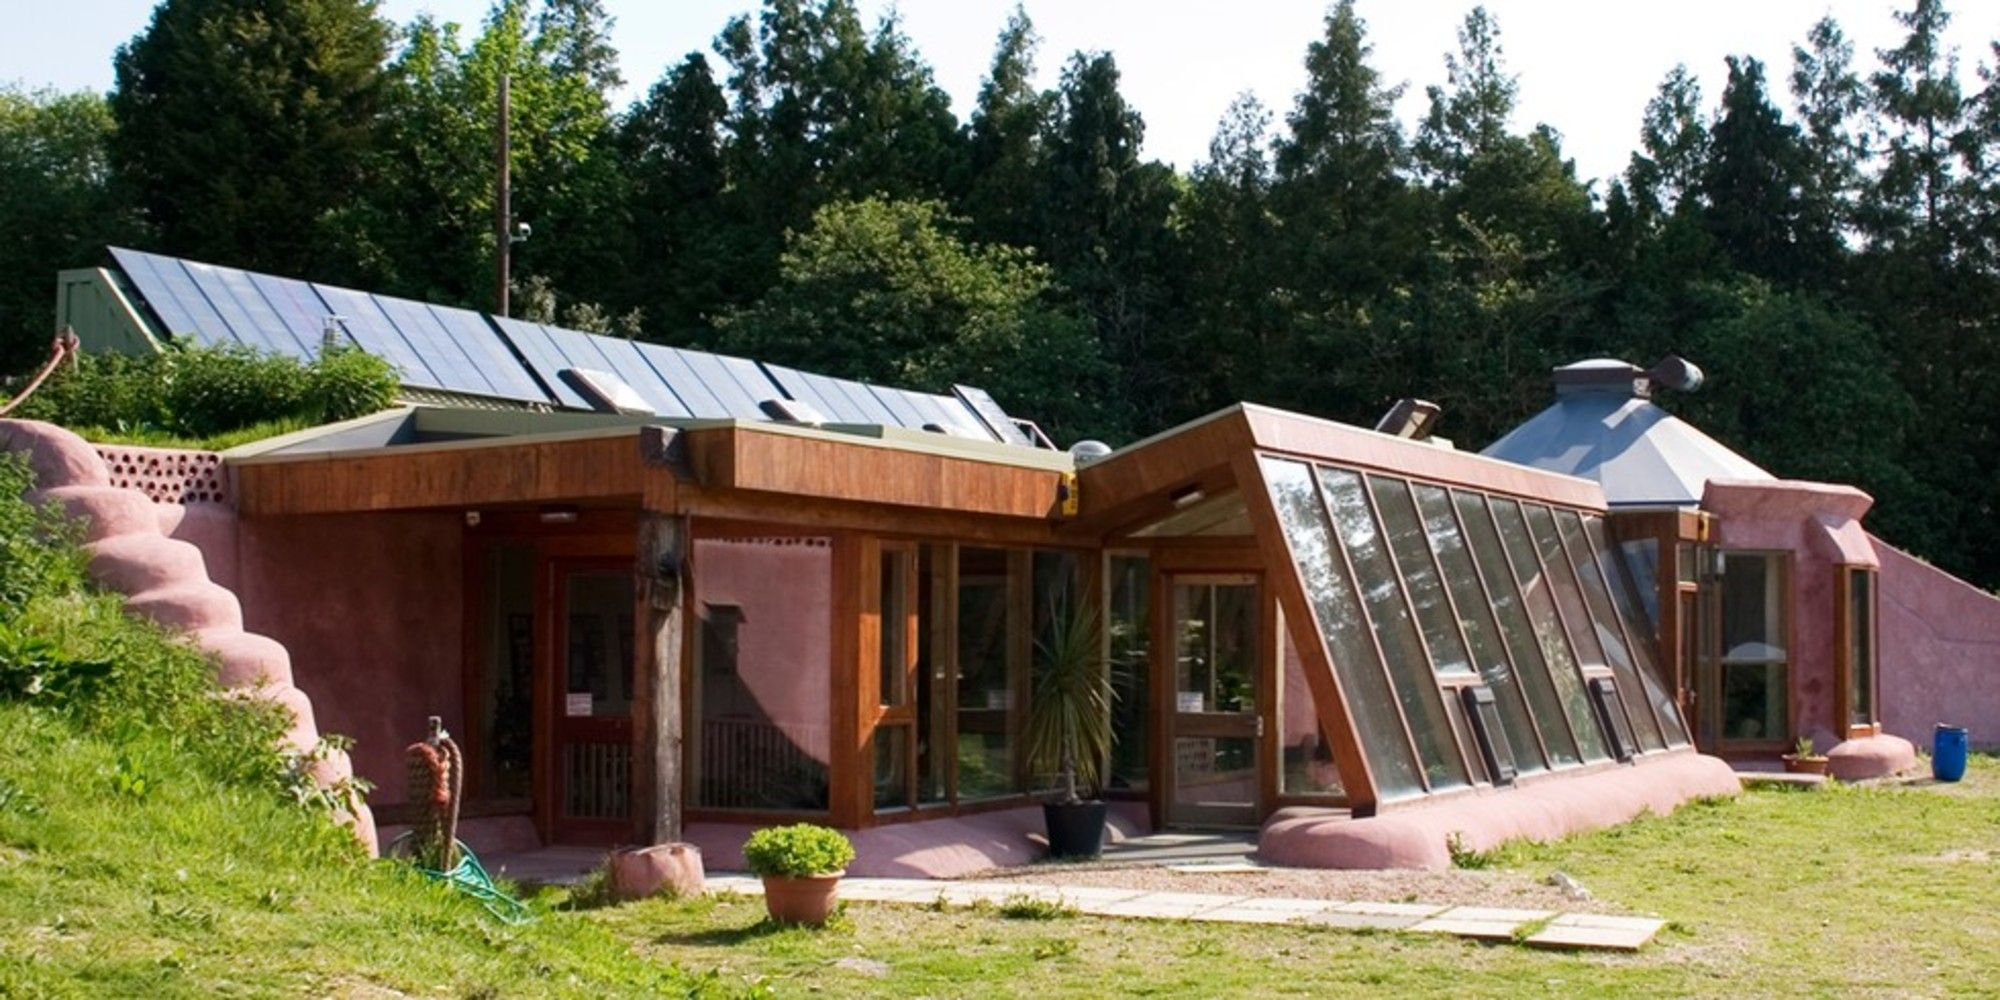 Building off grid homes - Manifest destiny triforce how to build a totally self sustaining off grid home